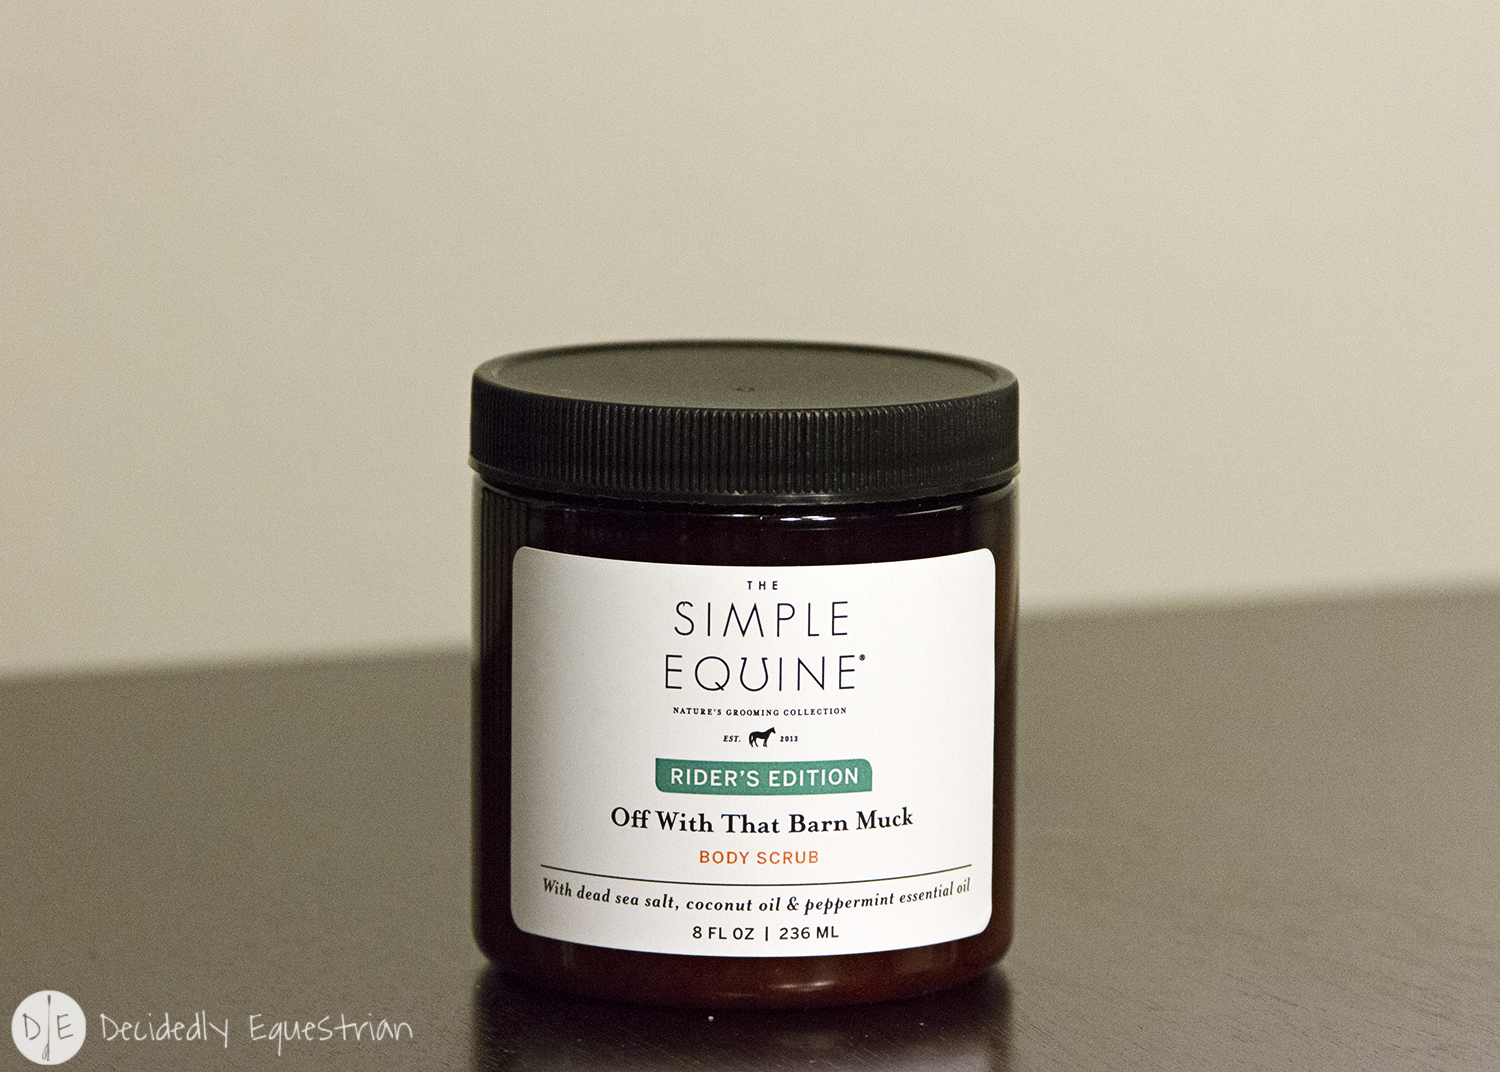 The Simple Equine Off With That Barn Muck Body Scrub Review